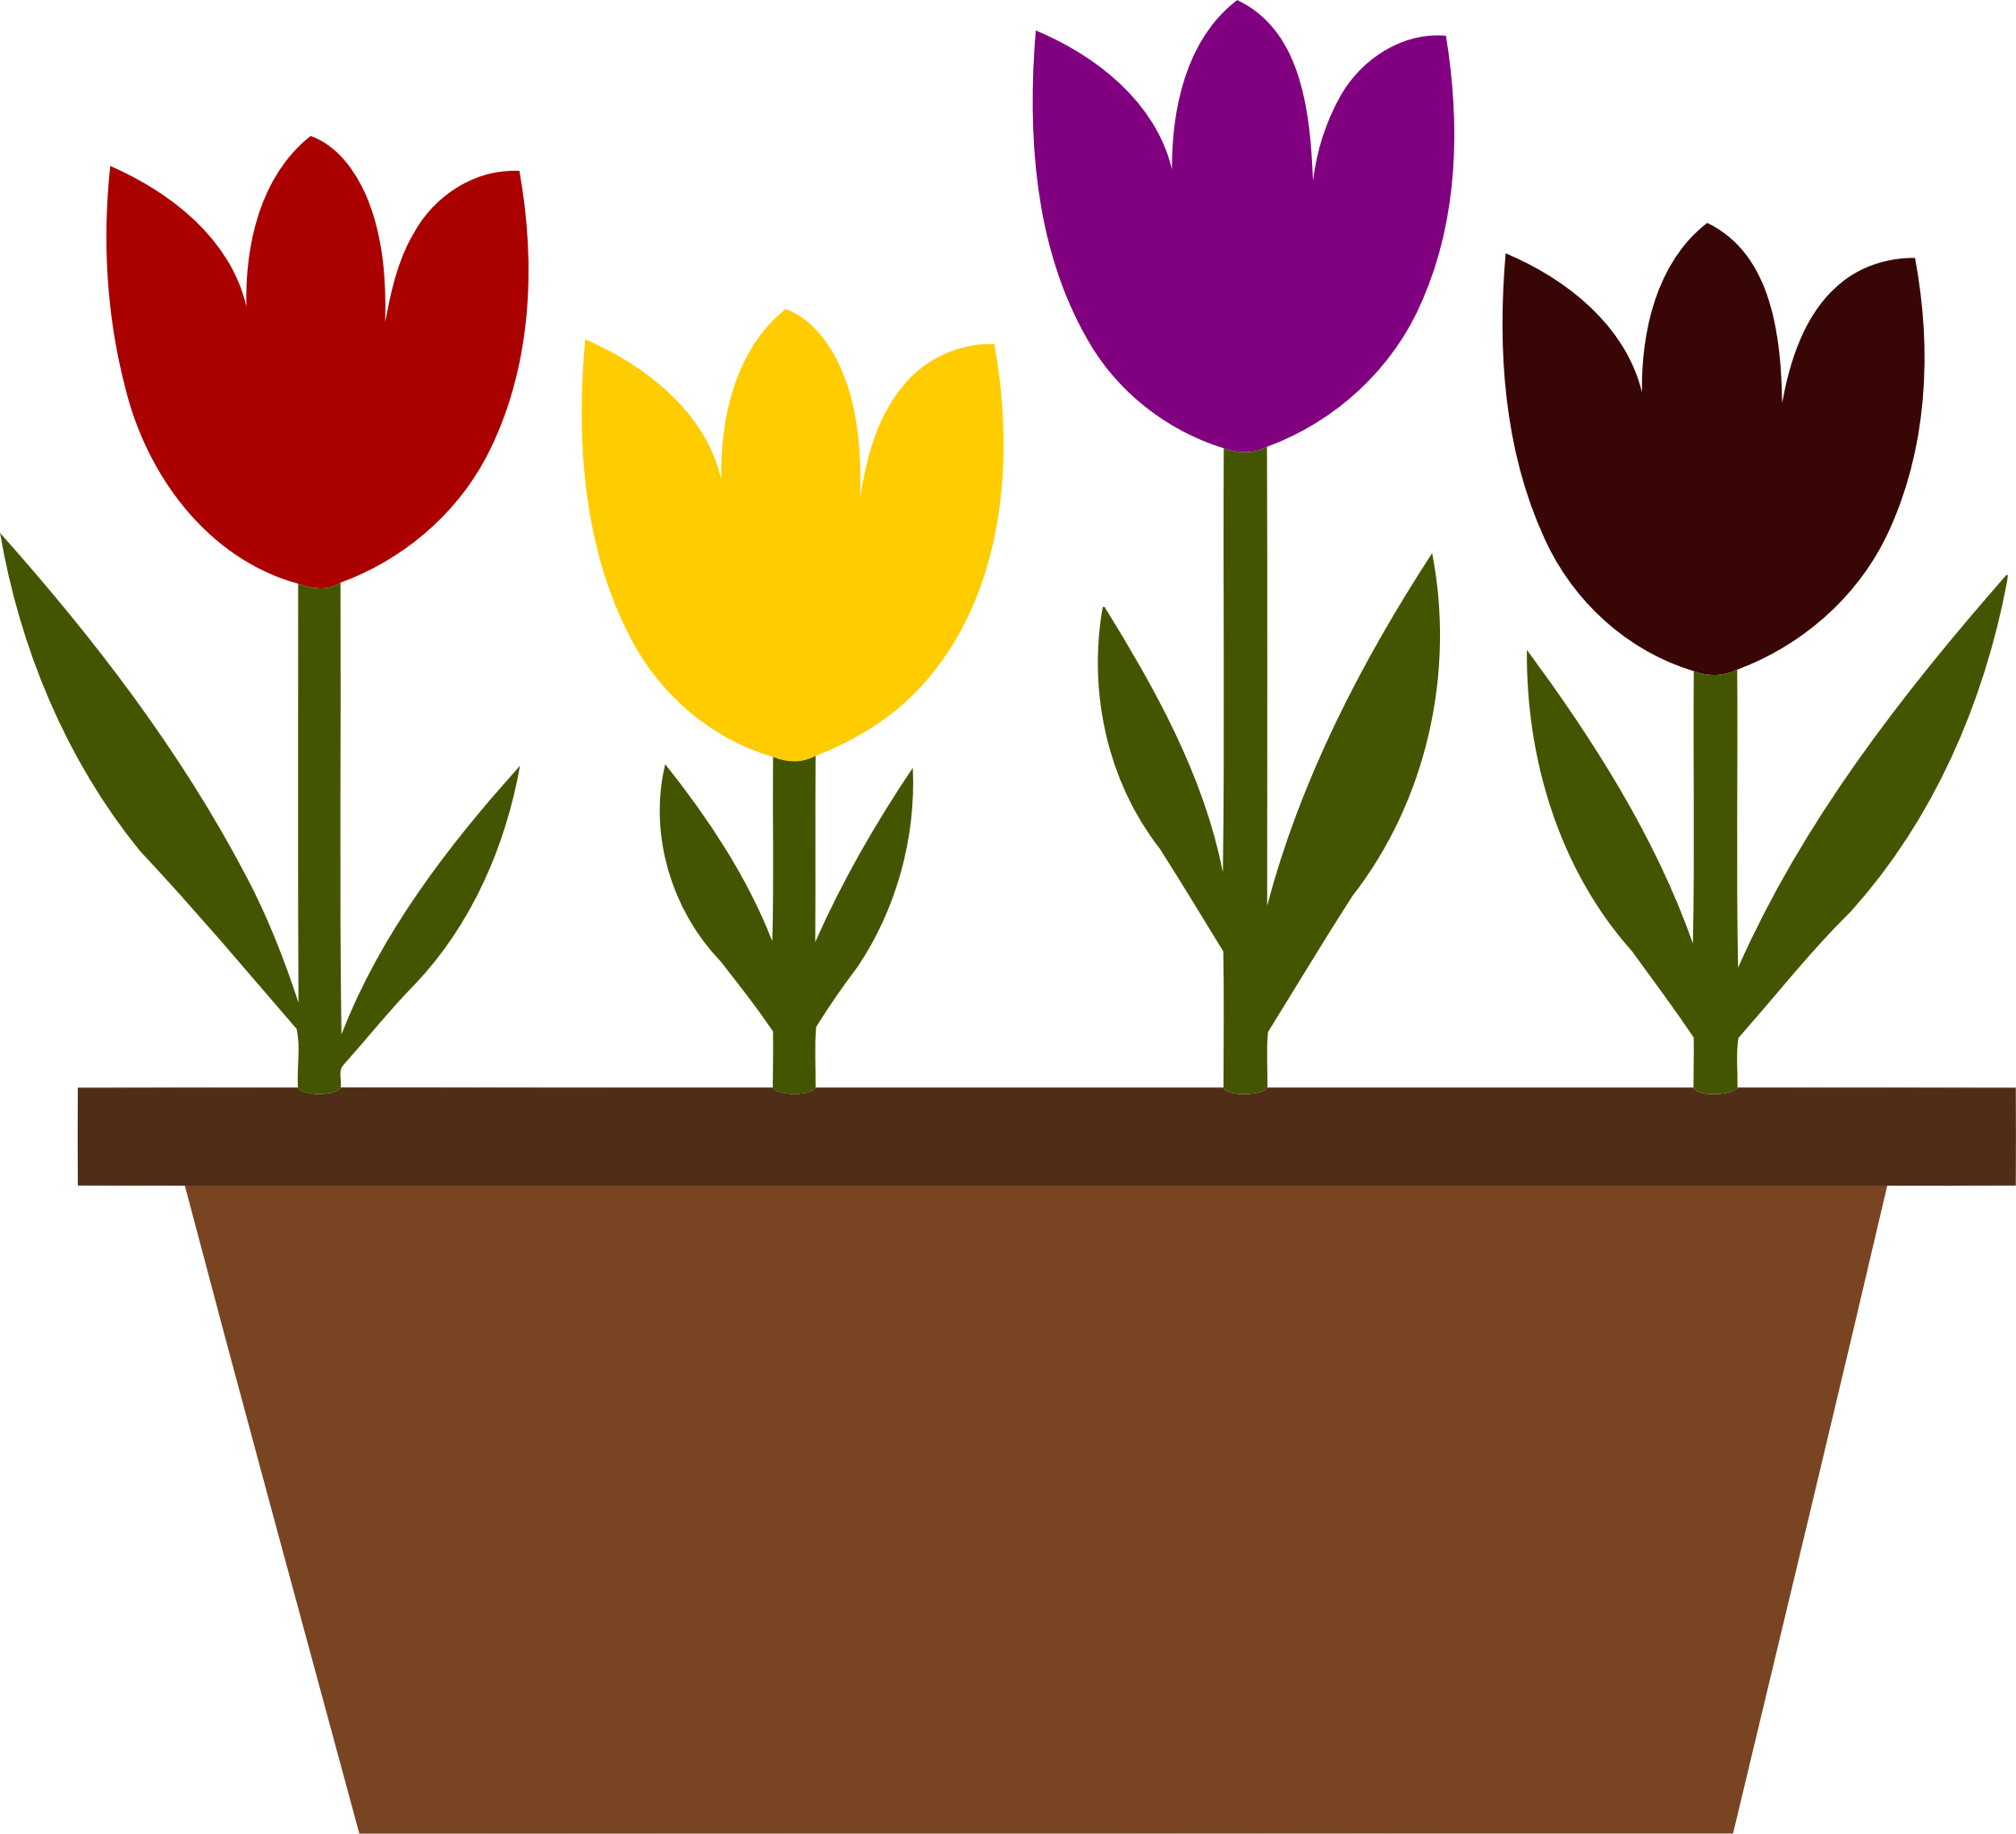 Potted tulips vectorized by Firkin